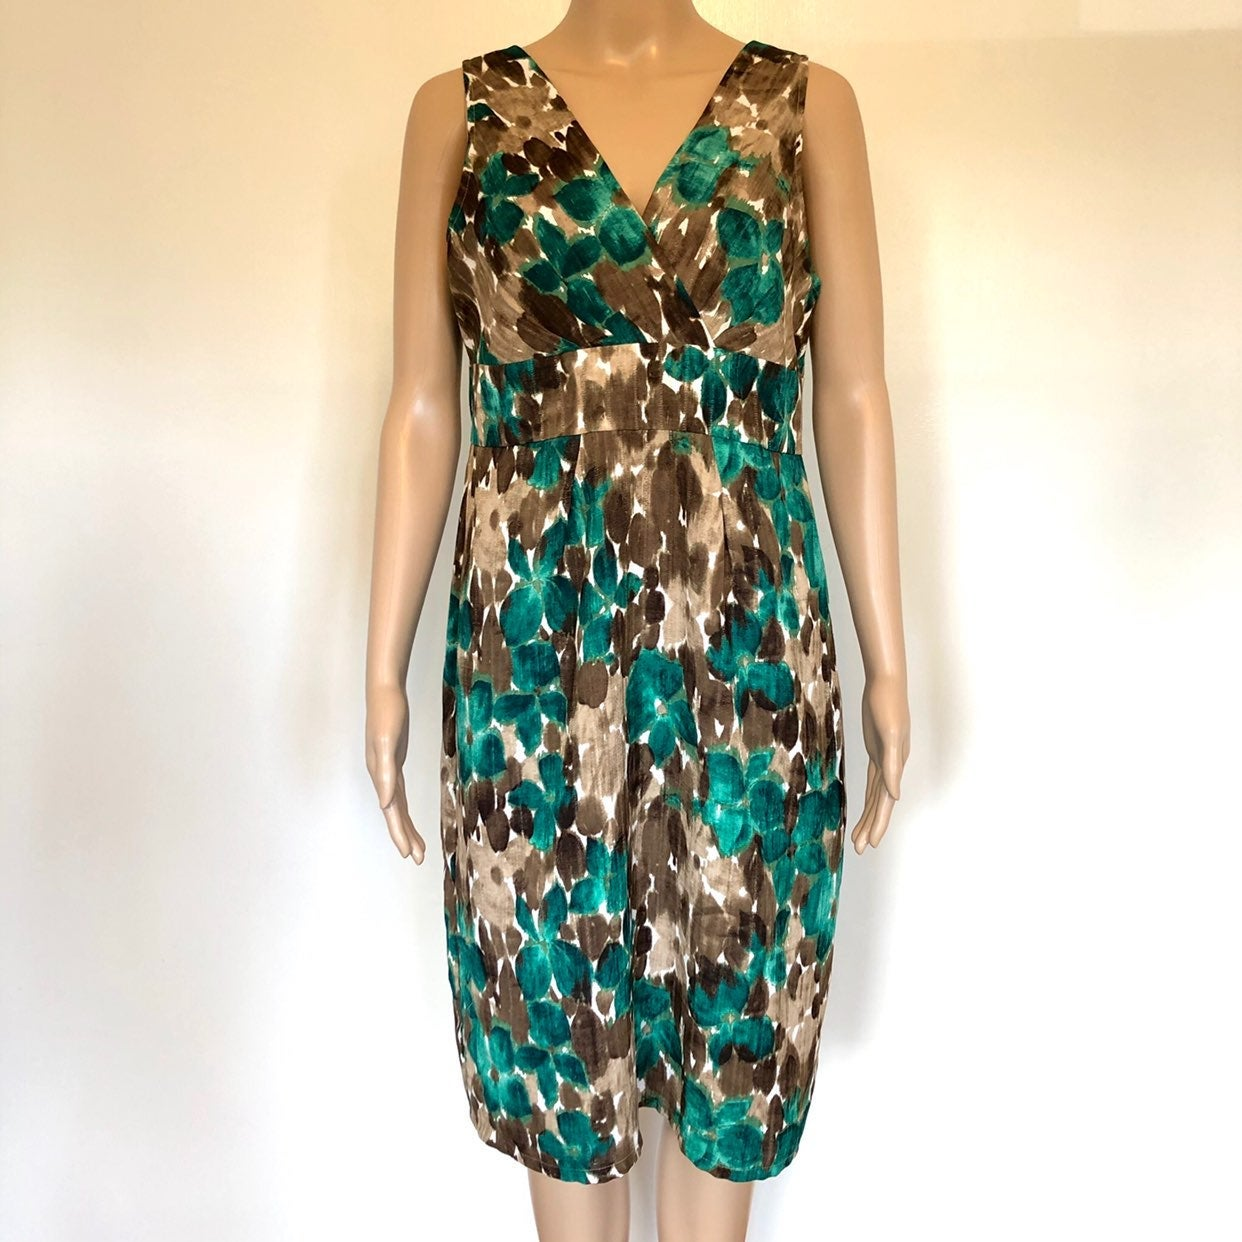 Axcess green&brown sleeveless midi dress